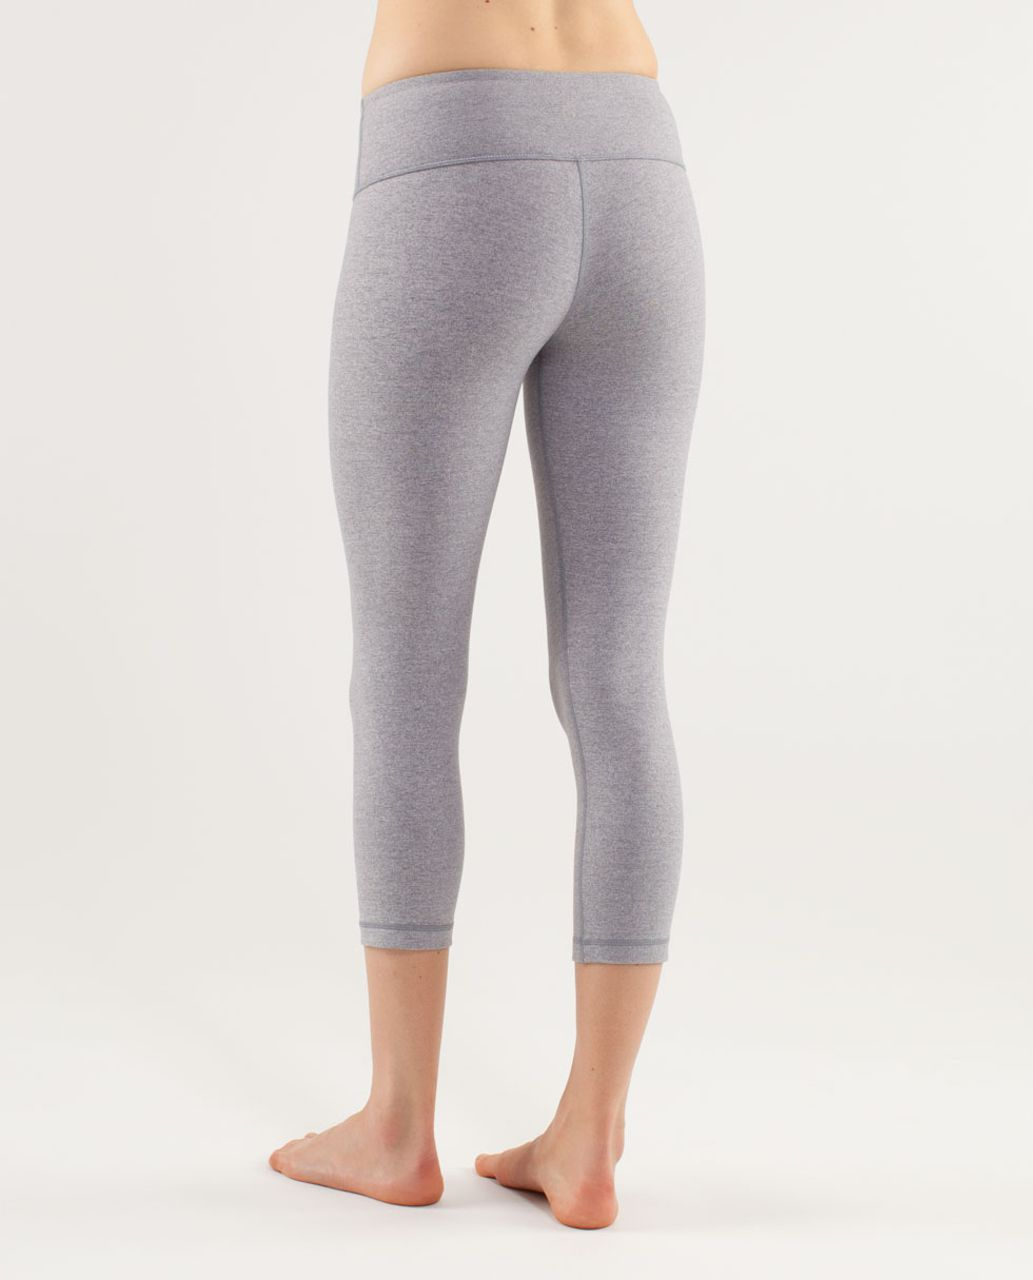 Lululemon Wunder Under Crop - Heathered Fossil